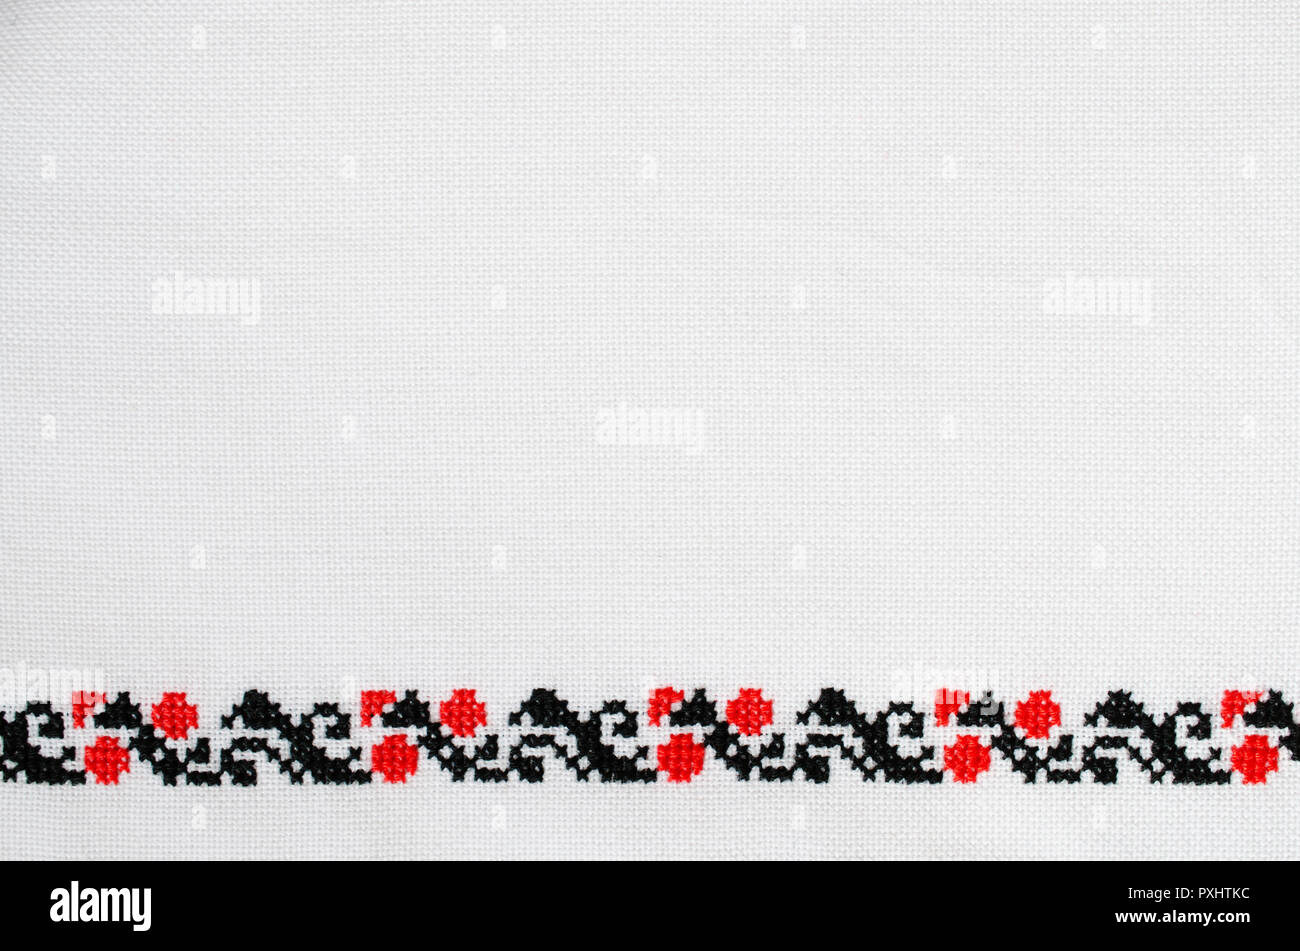 Texture of White Canvas With Slavic Red and Black Embroidery by Cross-stitch. Ukrainian Embroidery for Background. - Stock Image